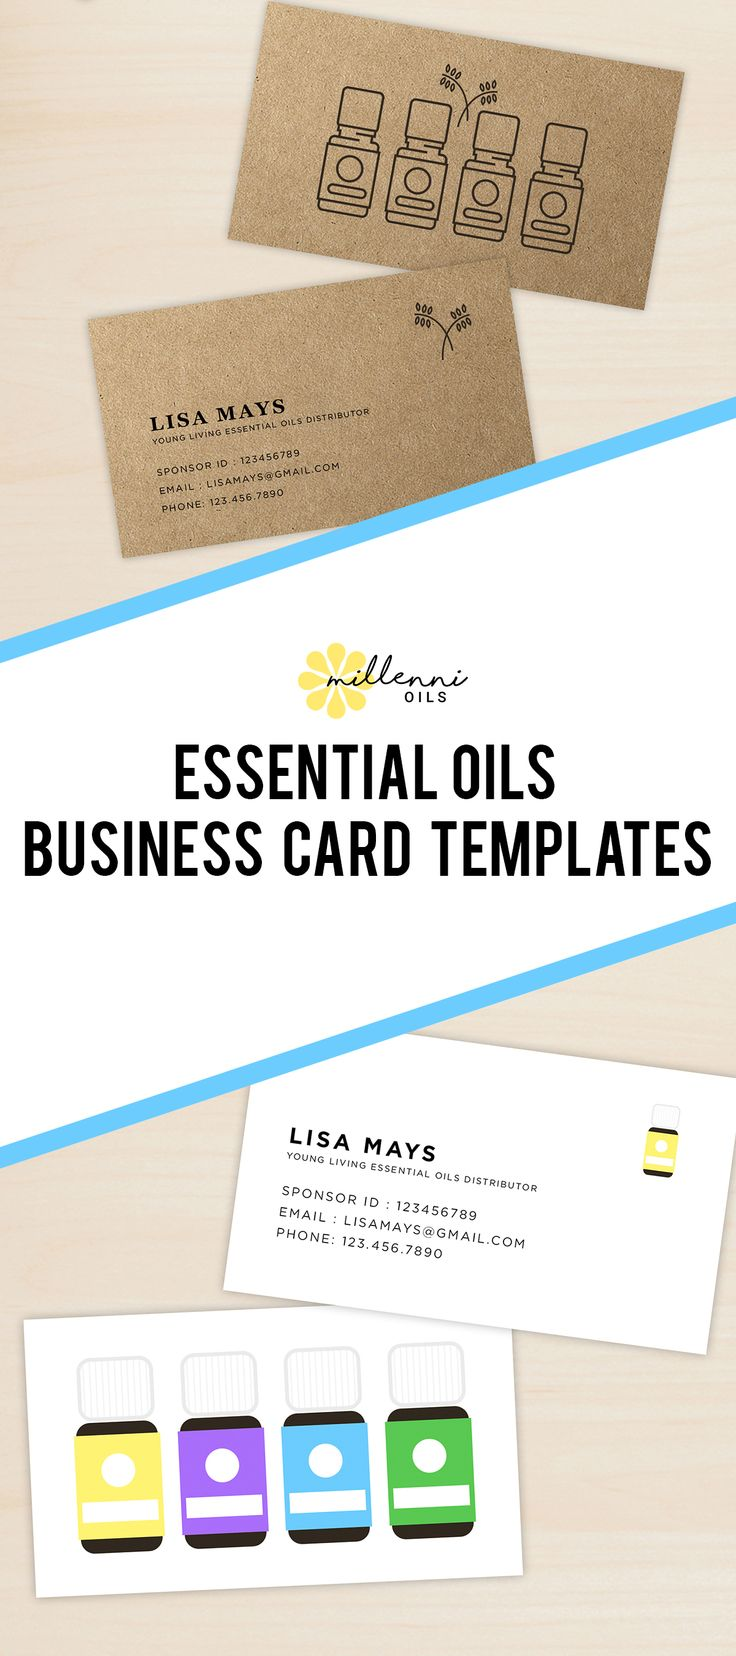 Essential Oil Business Cards, Young Living Essential Oils, Business Resources, Business Card Template